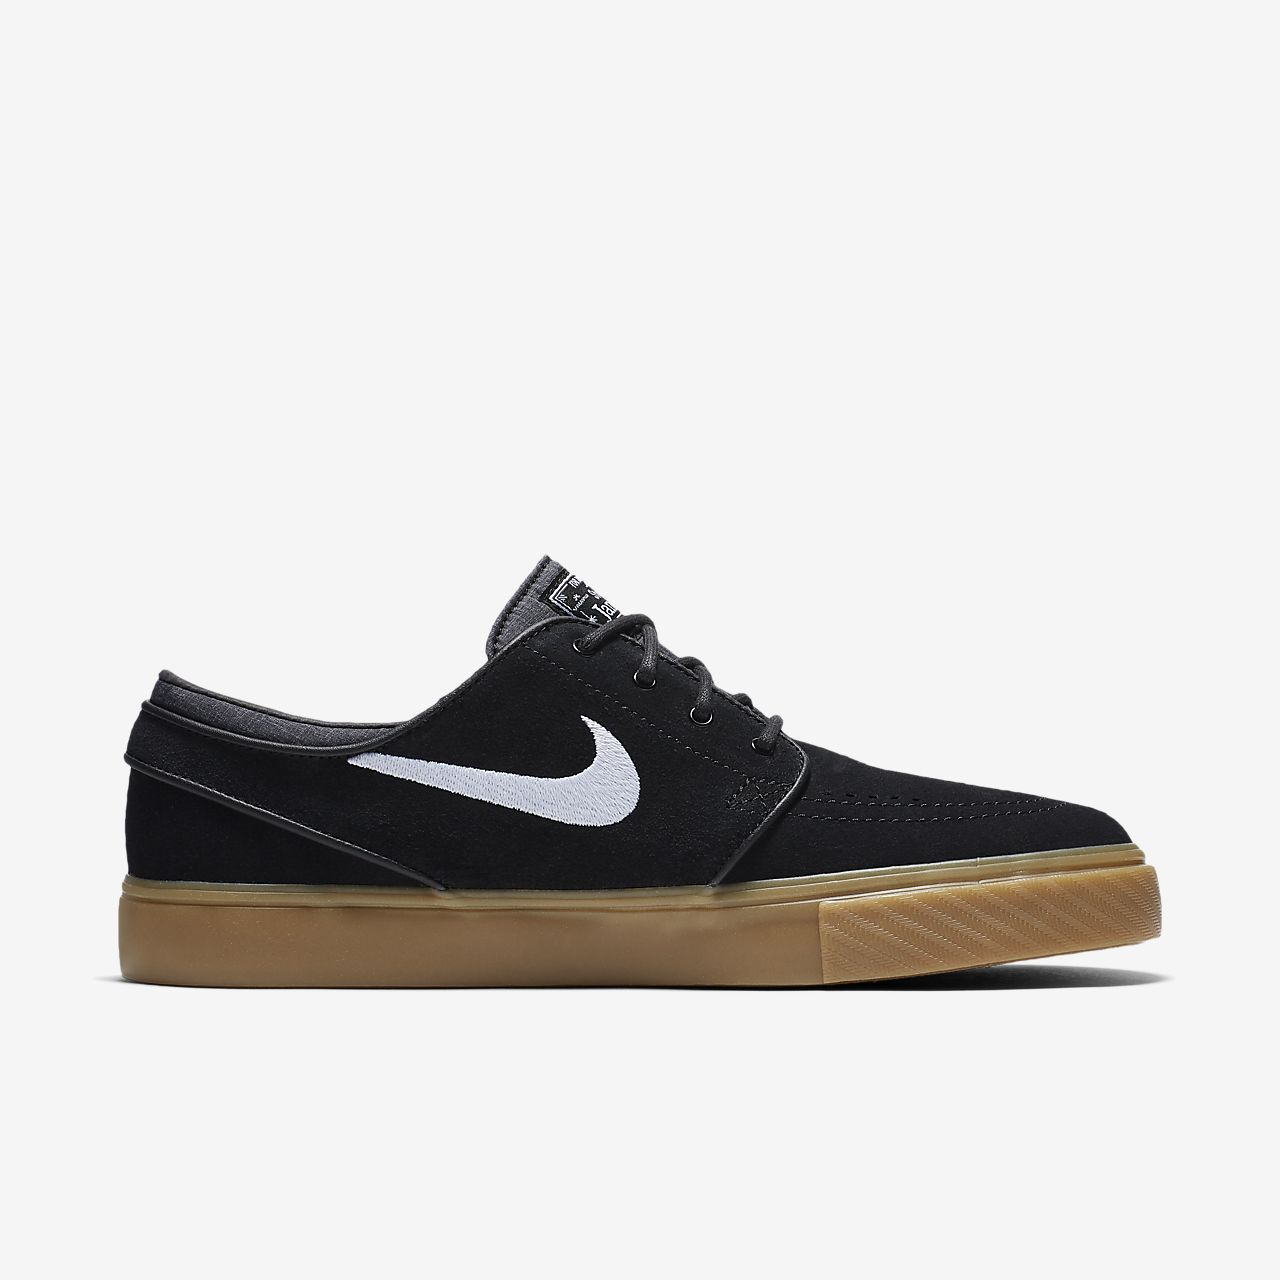 Chaussures Nike SB Collection Stefan Janoski 40 bleues Casual homme Cjz6k0fHF